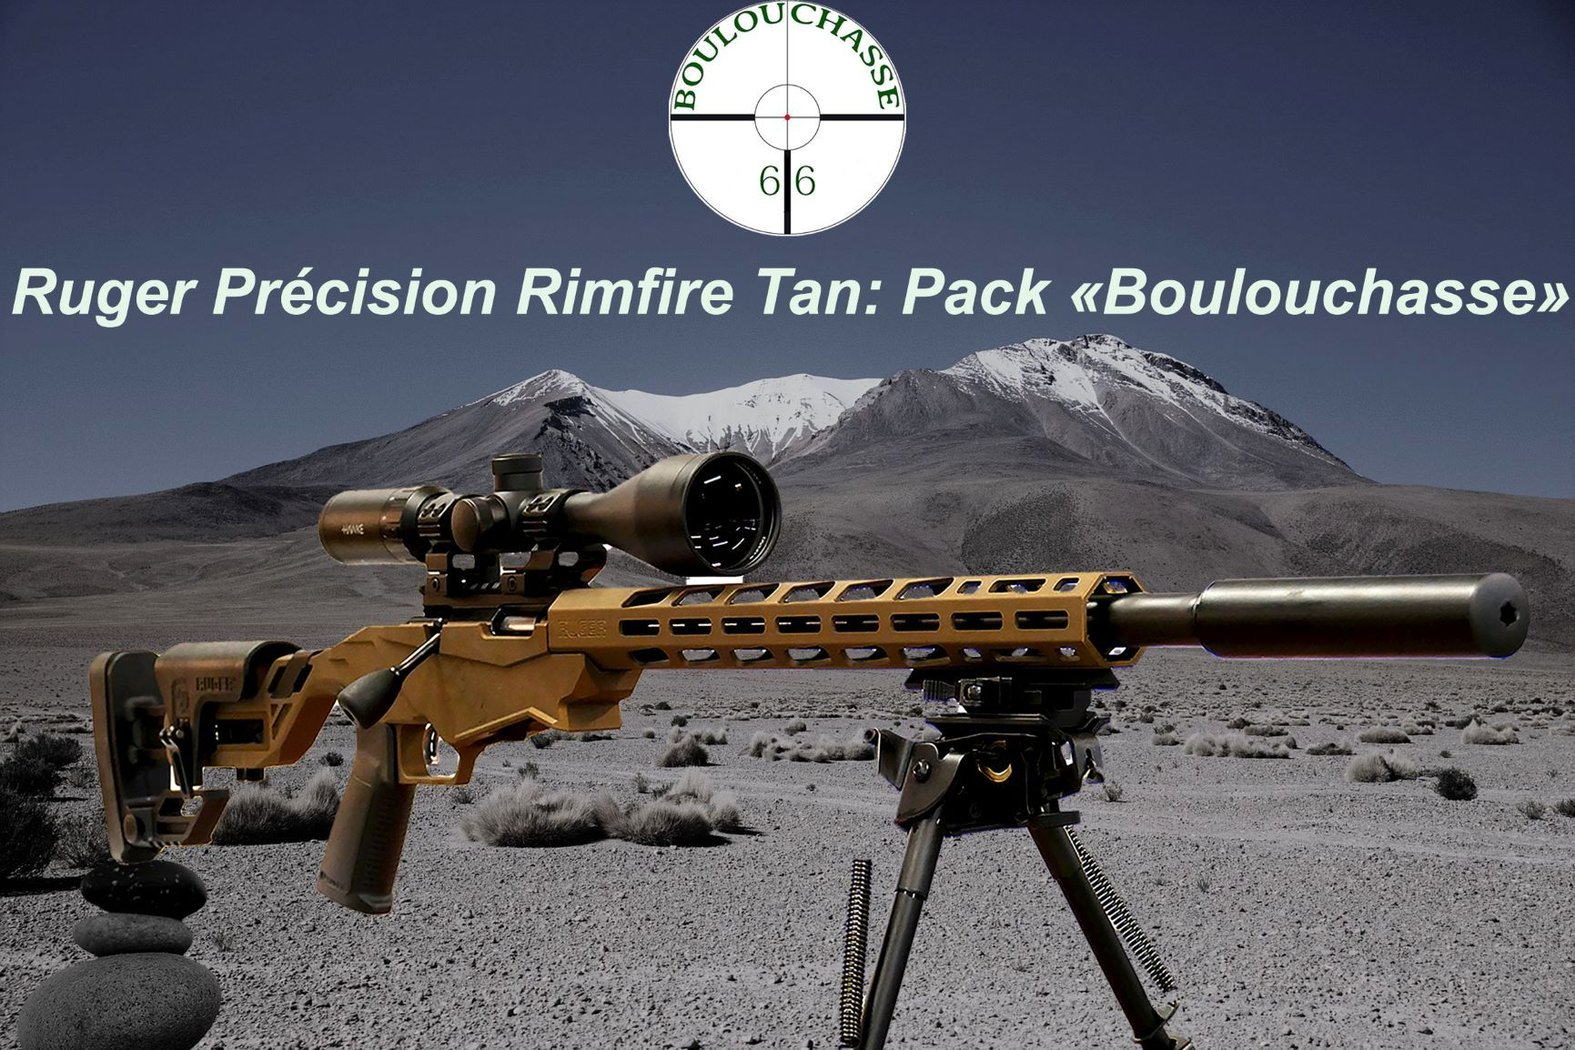 Ruger Précision Rimfire Tan- Pack Boulouchasse